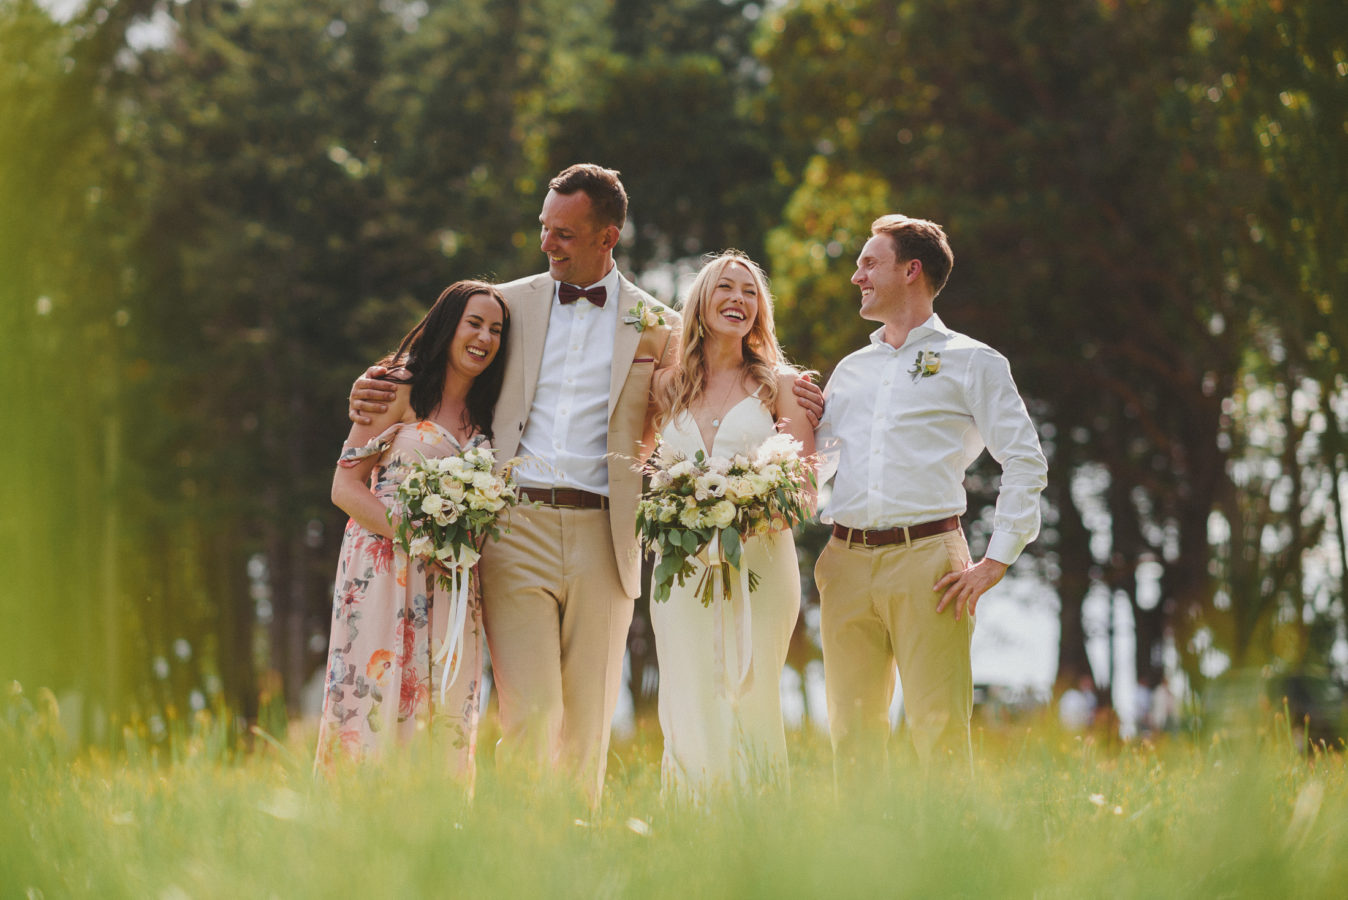 bride, groom and their maid-of-honour and best-man standing and laughing in a field of tall grass with the forest behind them